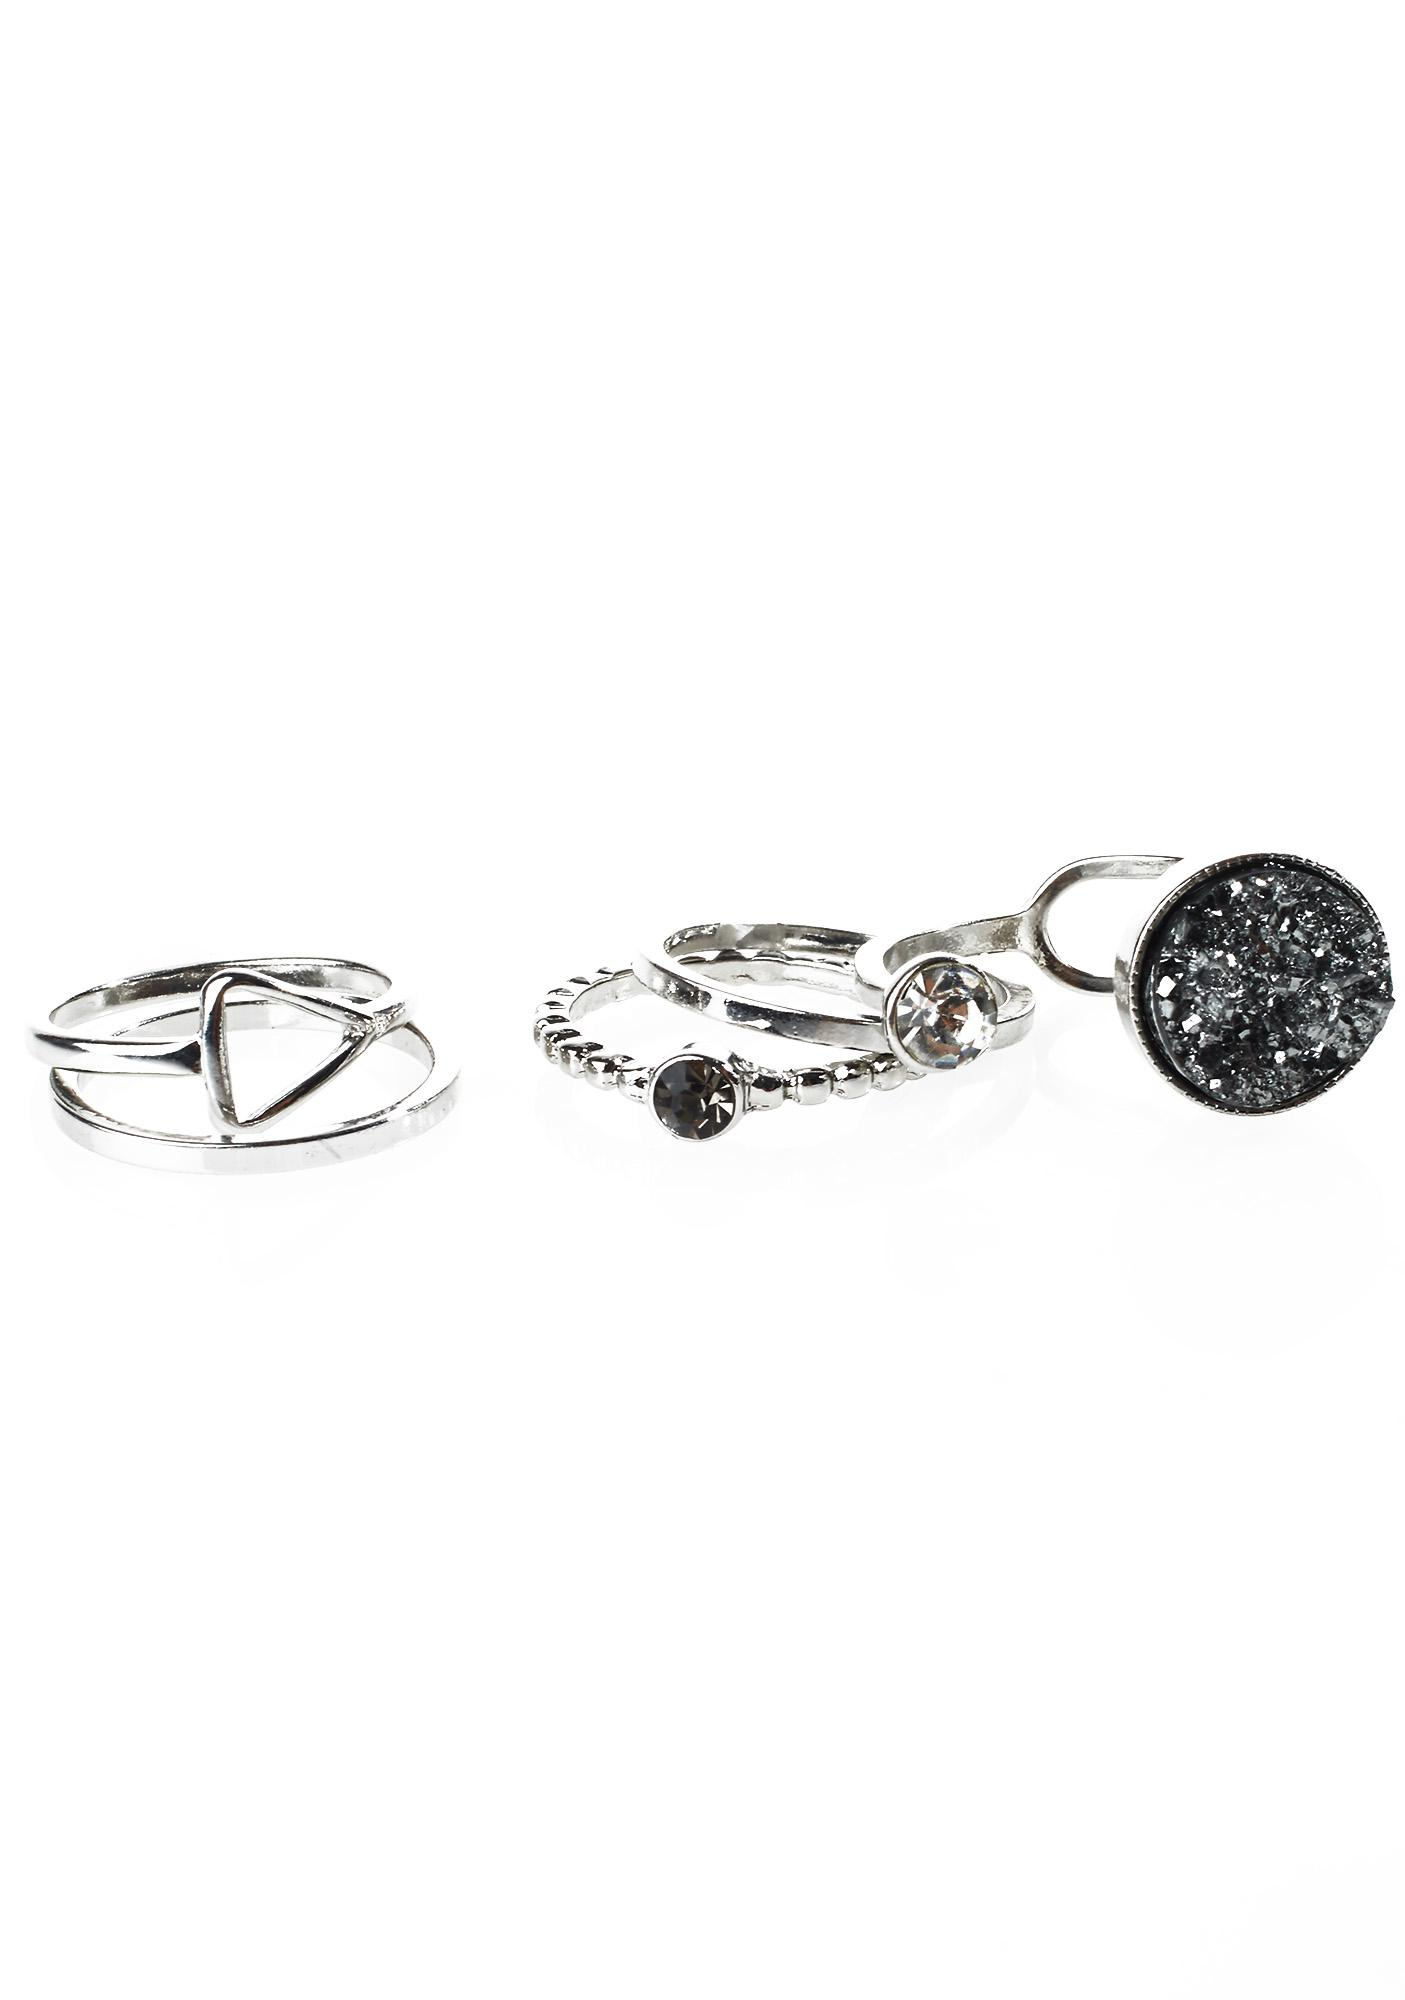 Soulmate Ring Set